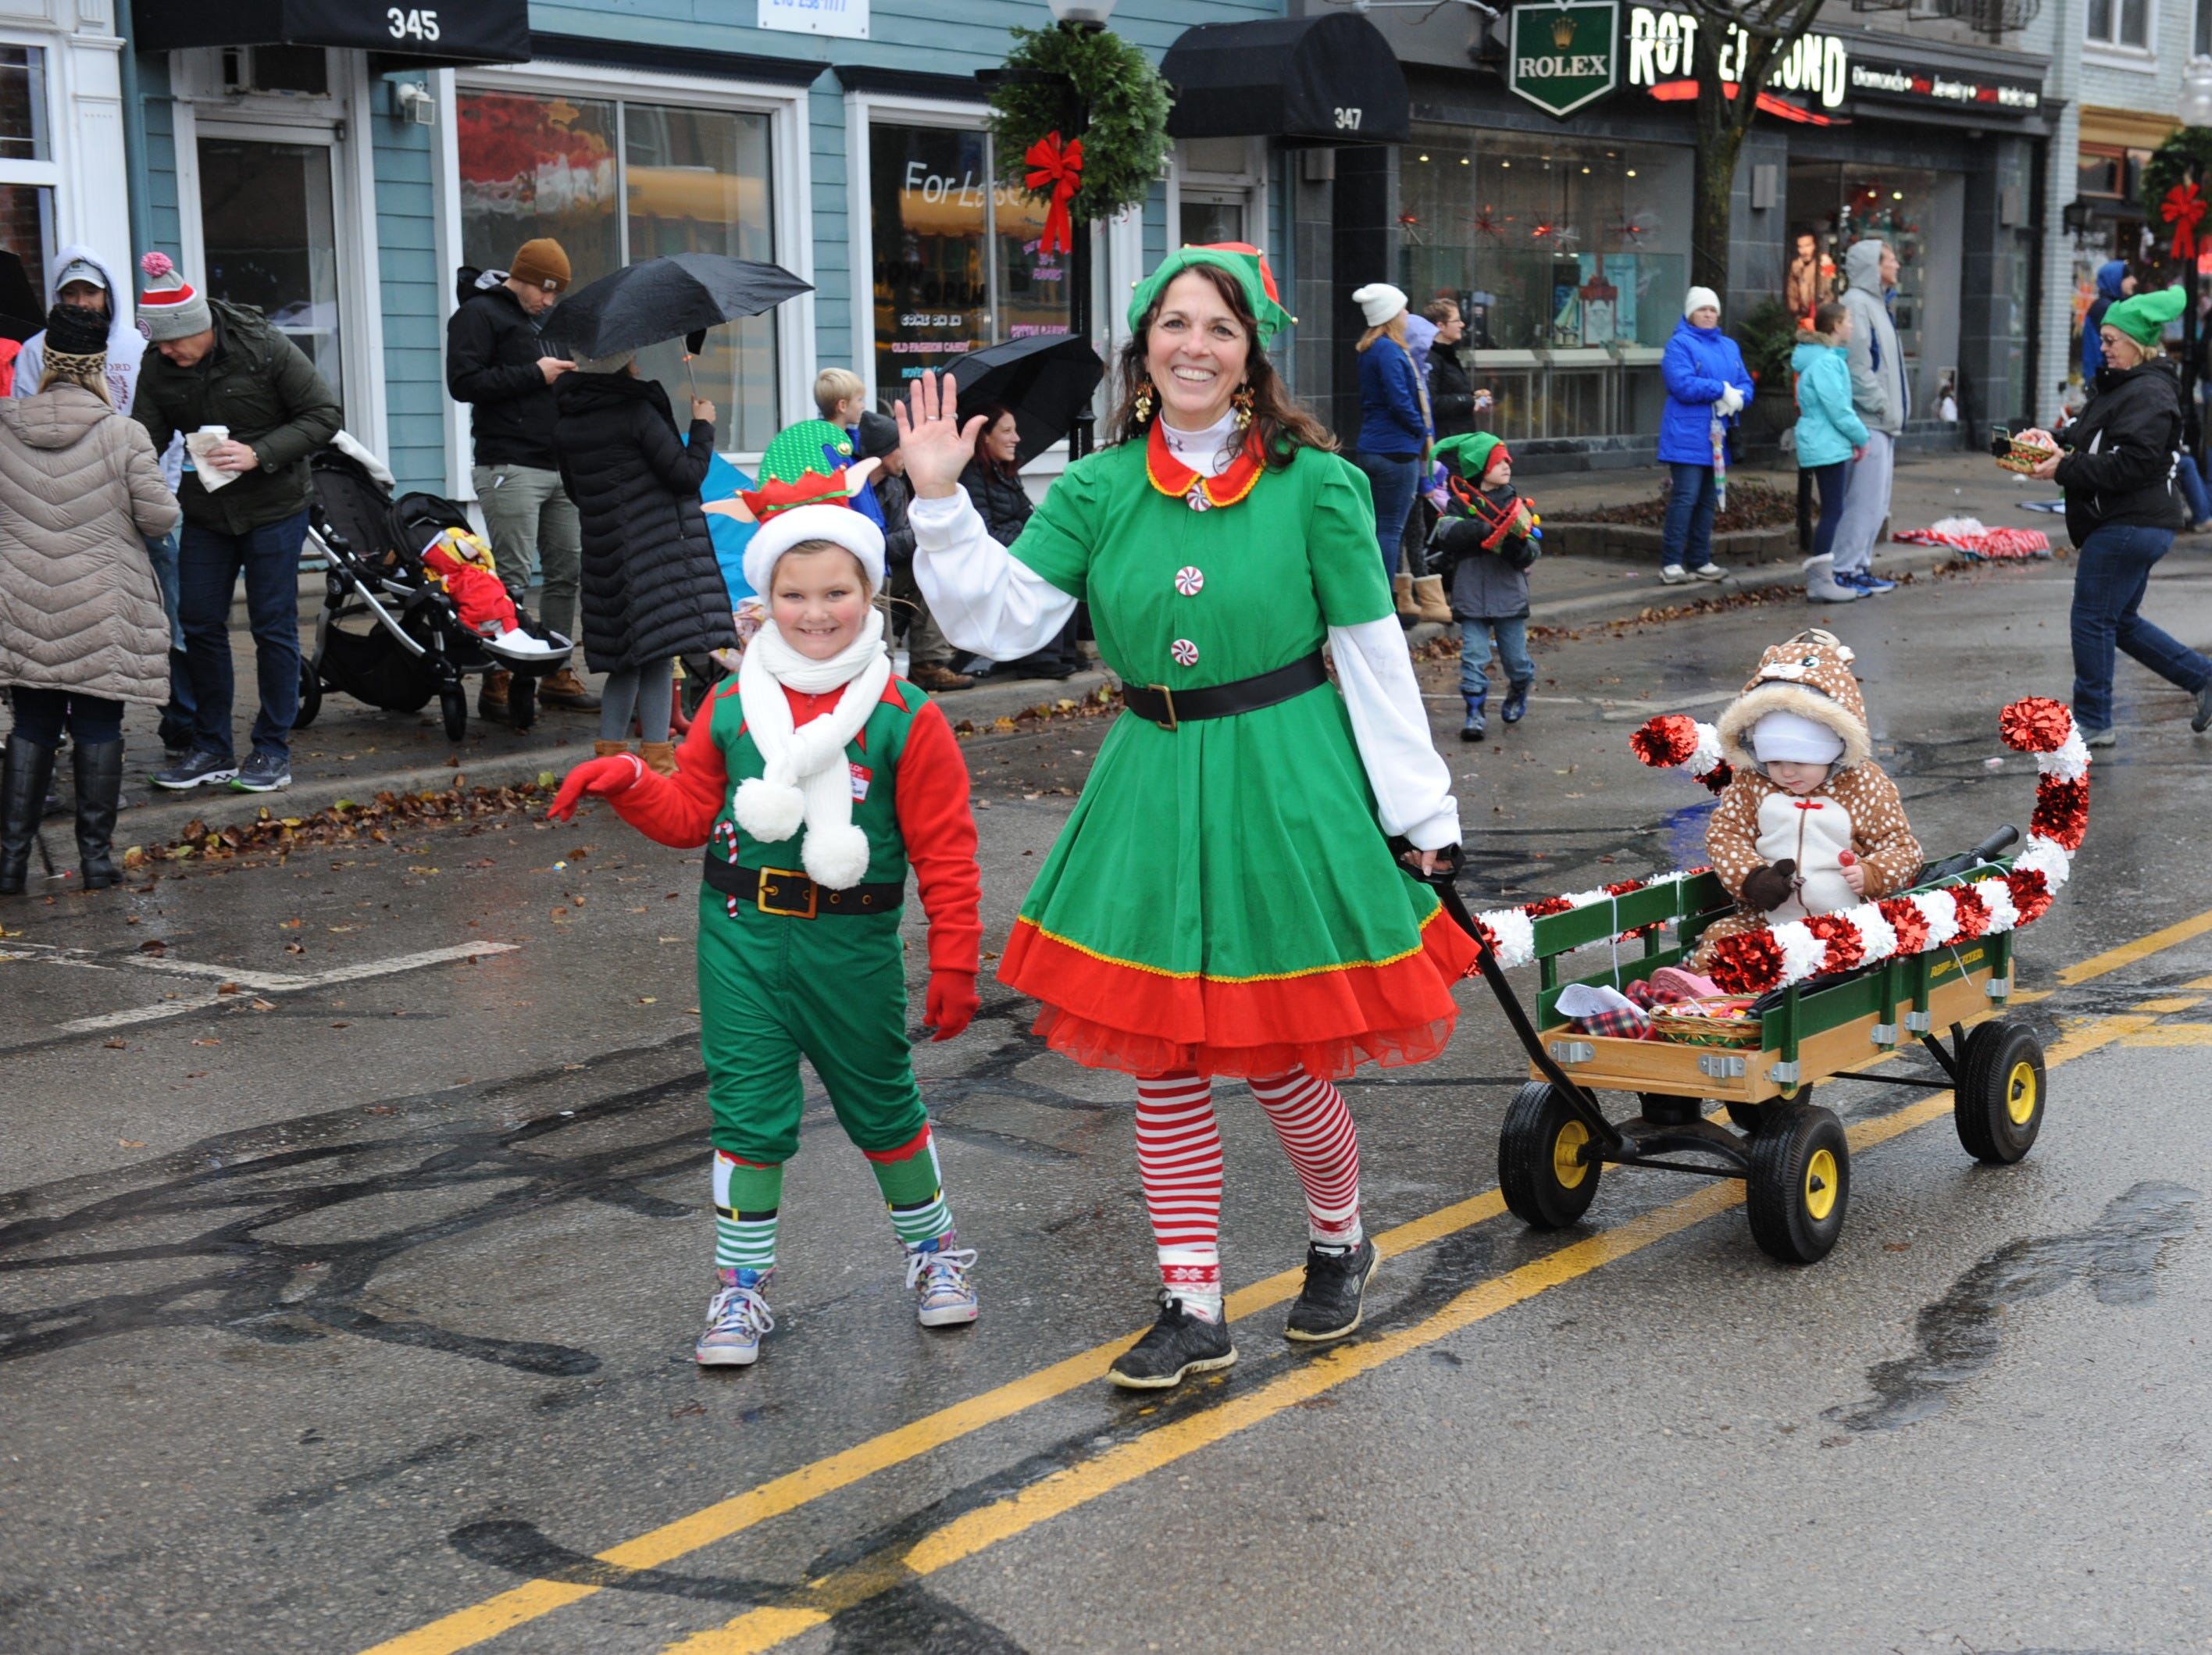 The streets of Milford find elves and their helpers during the annual Christmas parade.